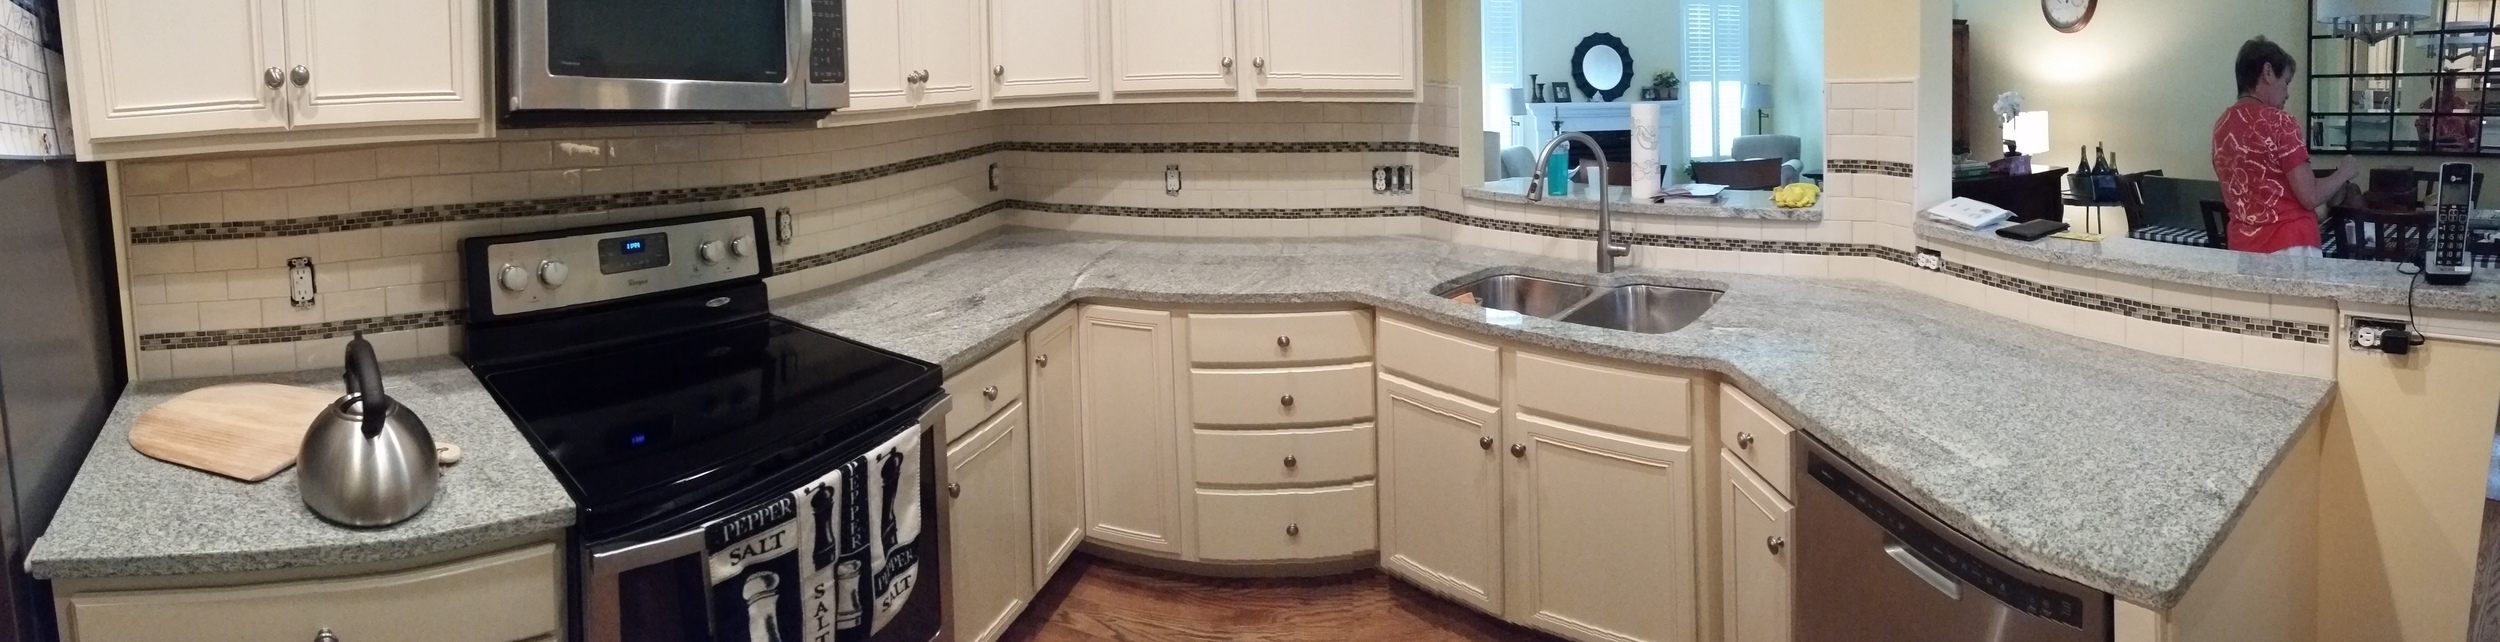 Panoramic Backsplash